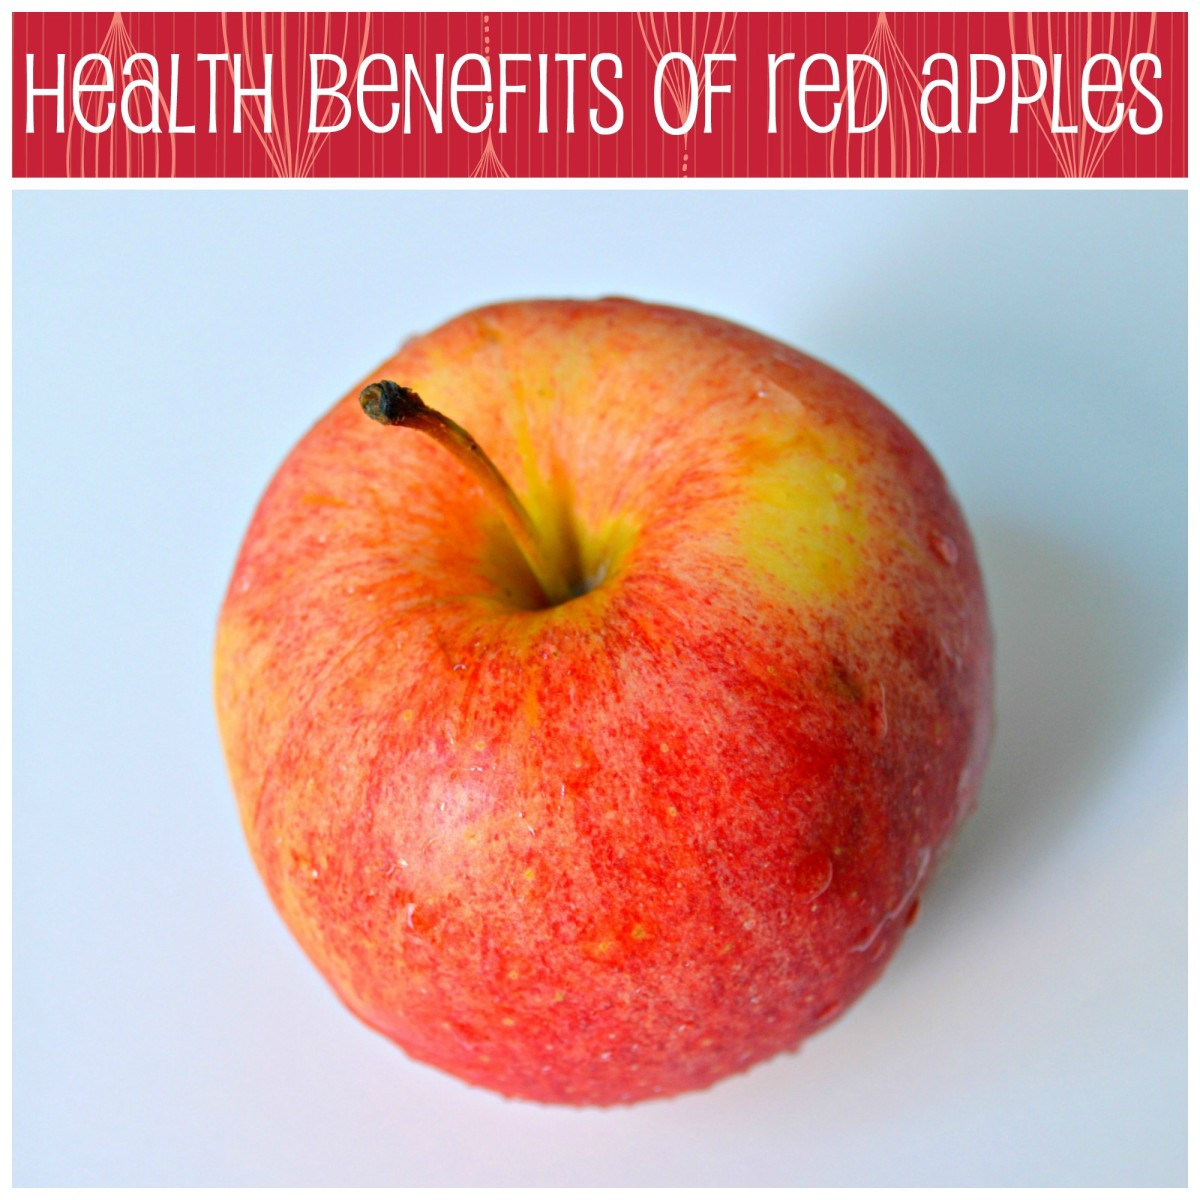 Here's why you should be eating more red apples!